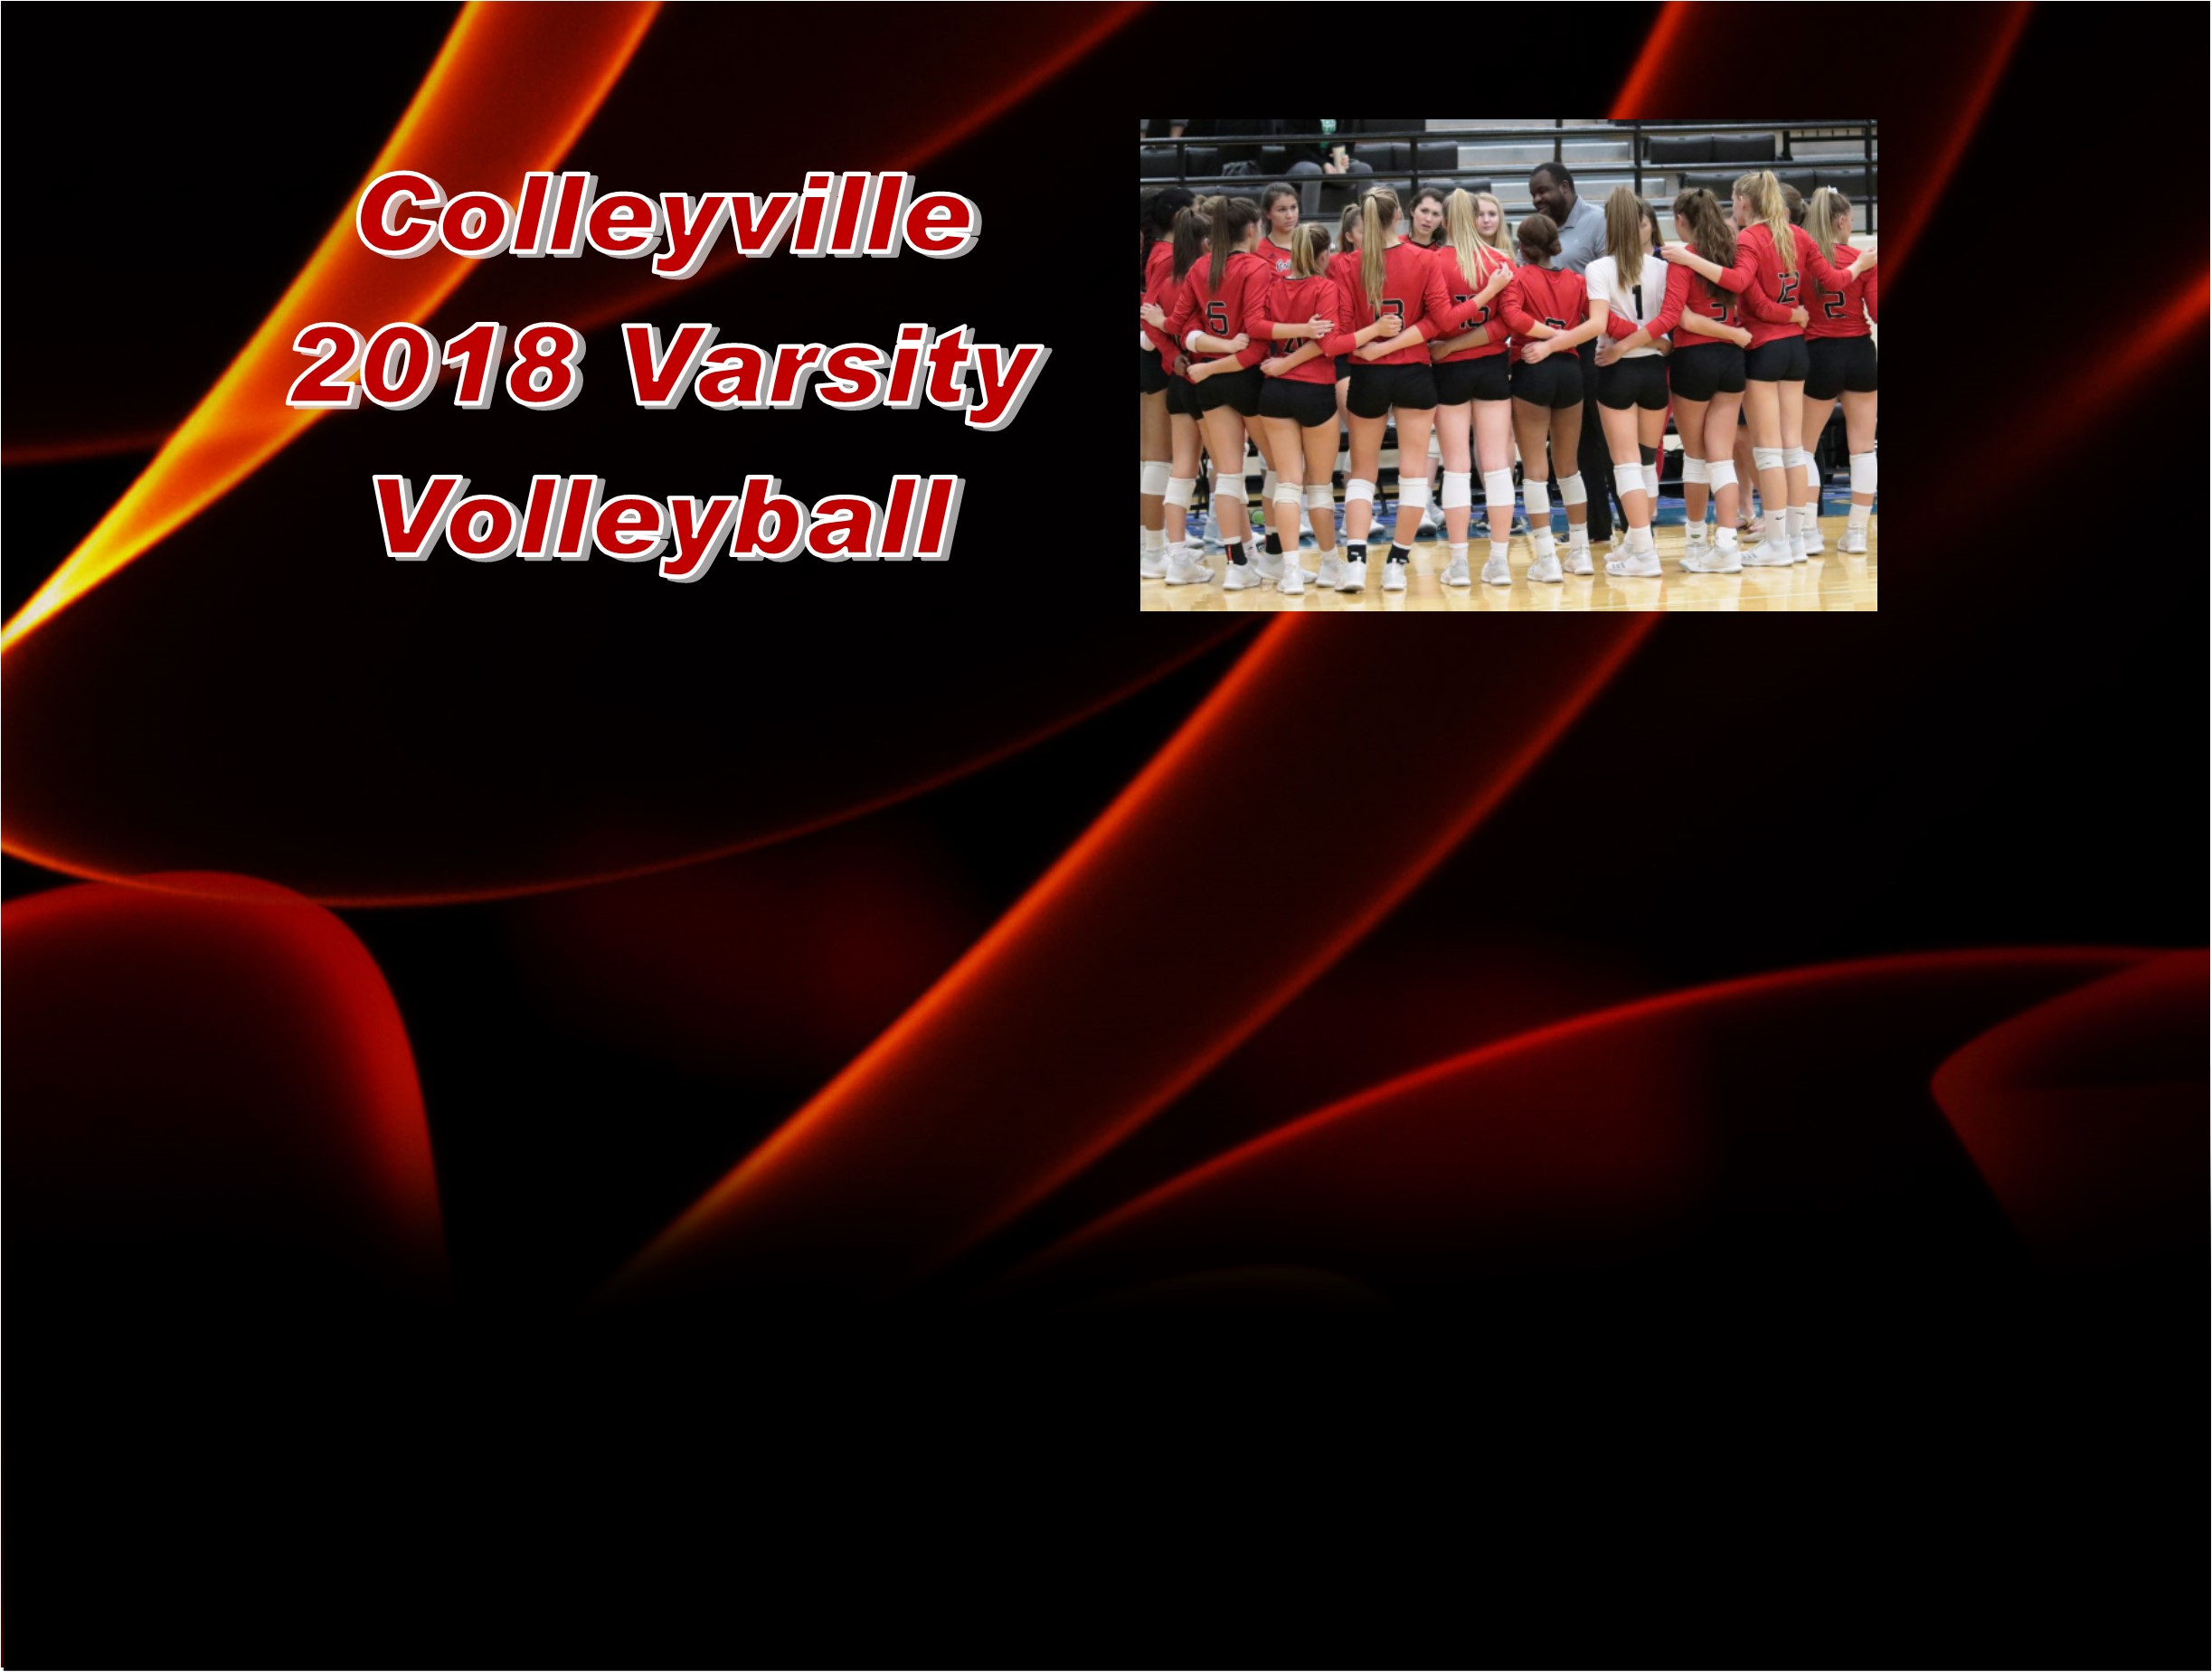 Colleyville Victorious Over Lake Dallas in Bi-District Playoff Match 3-0